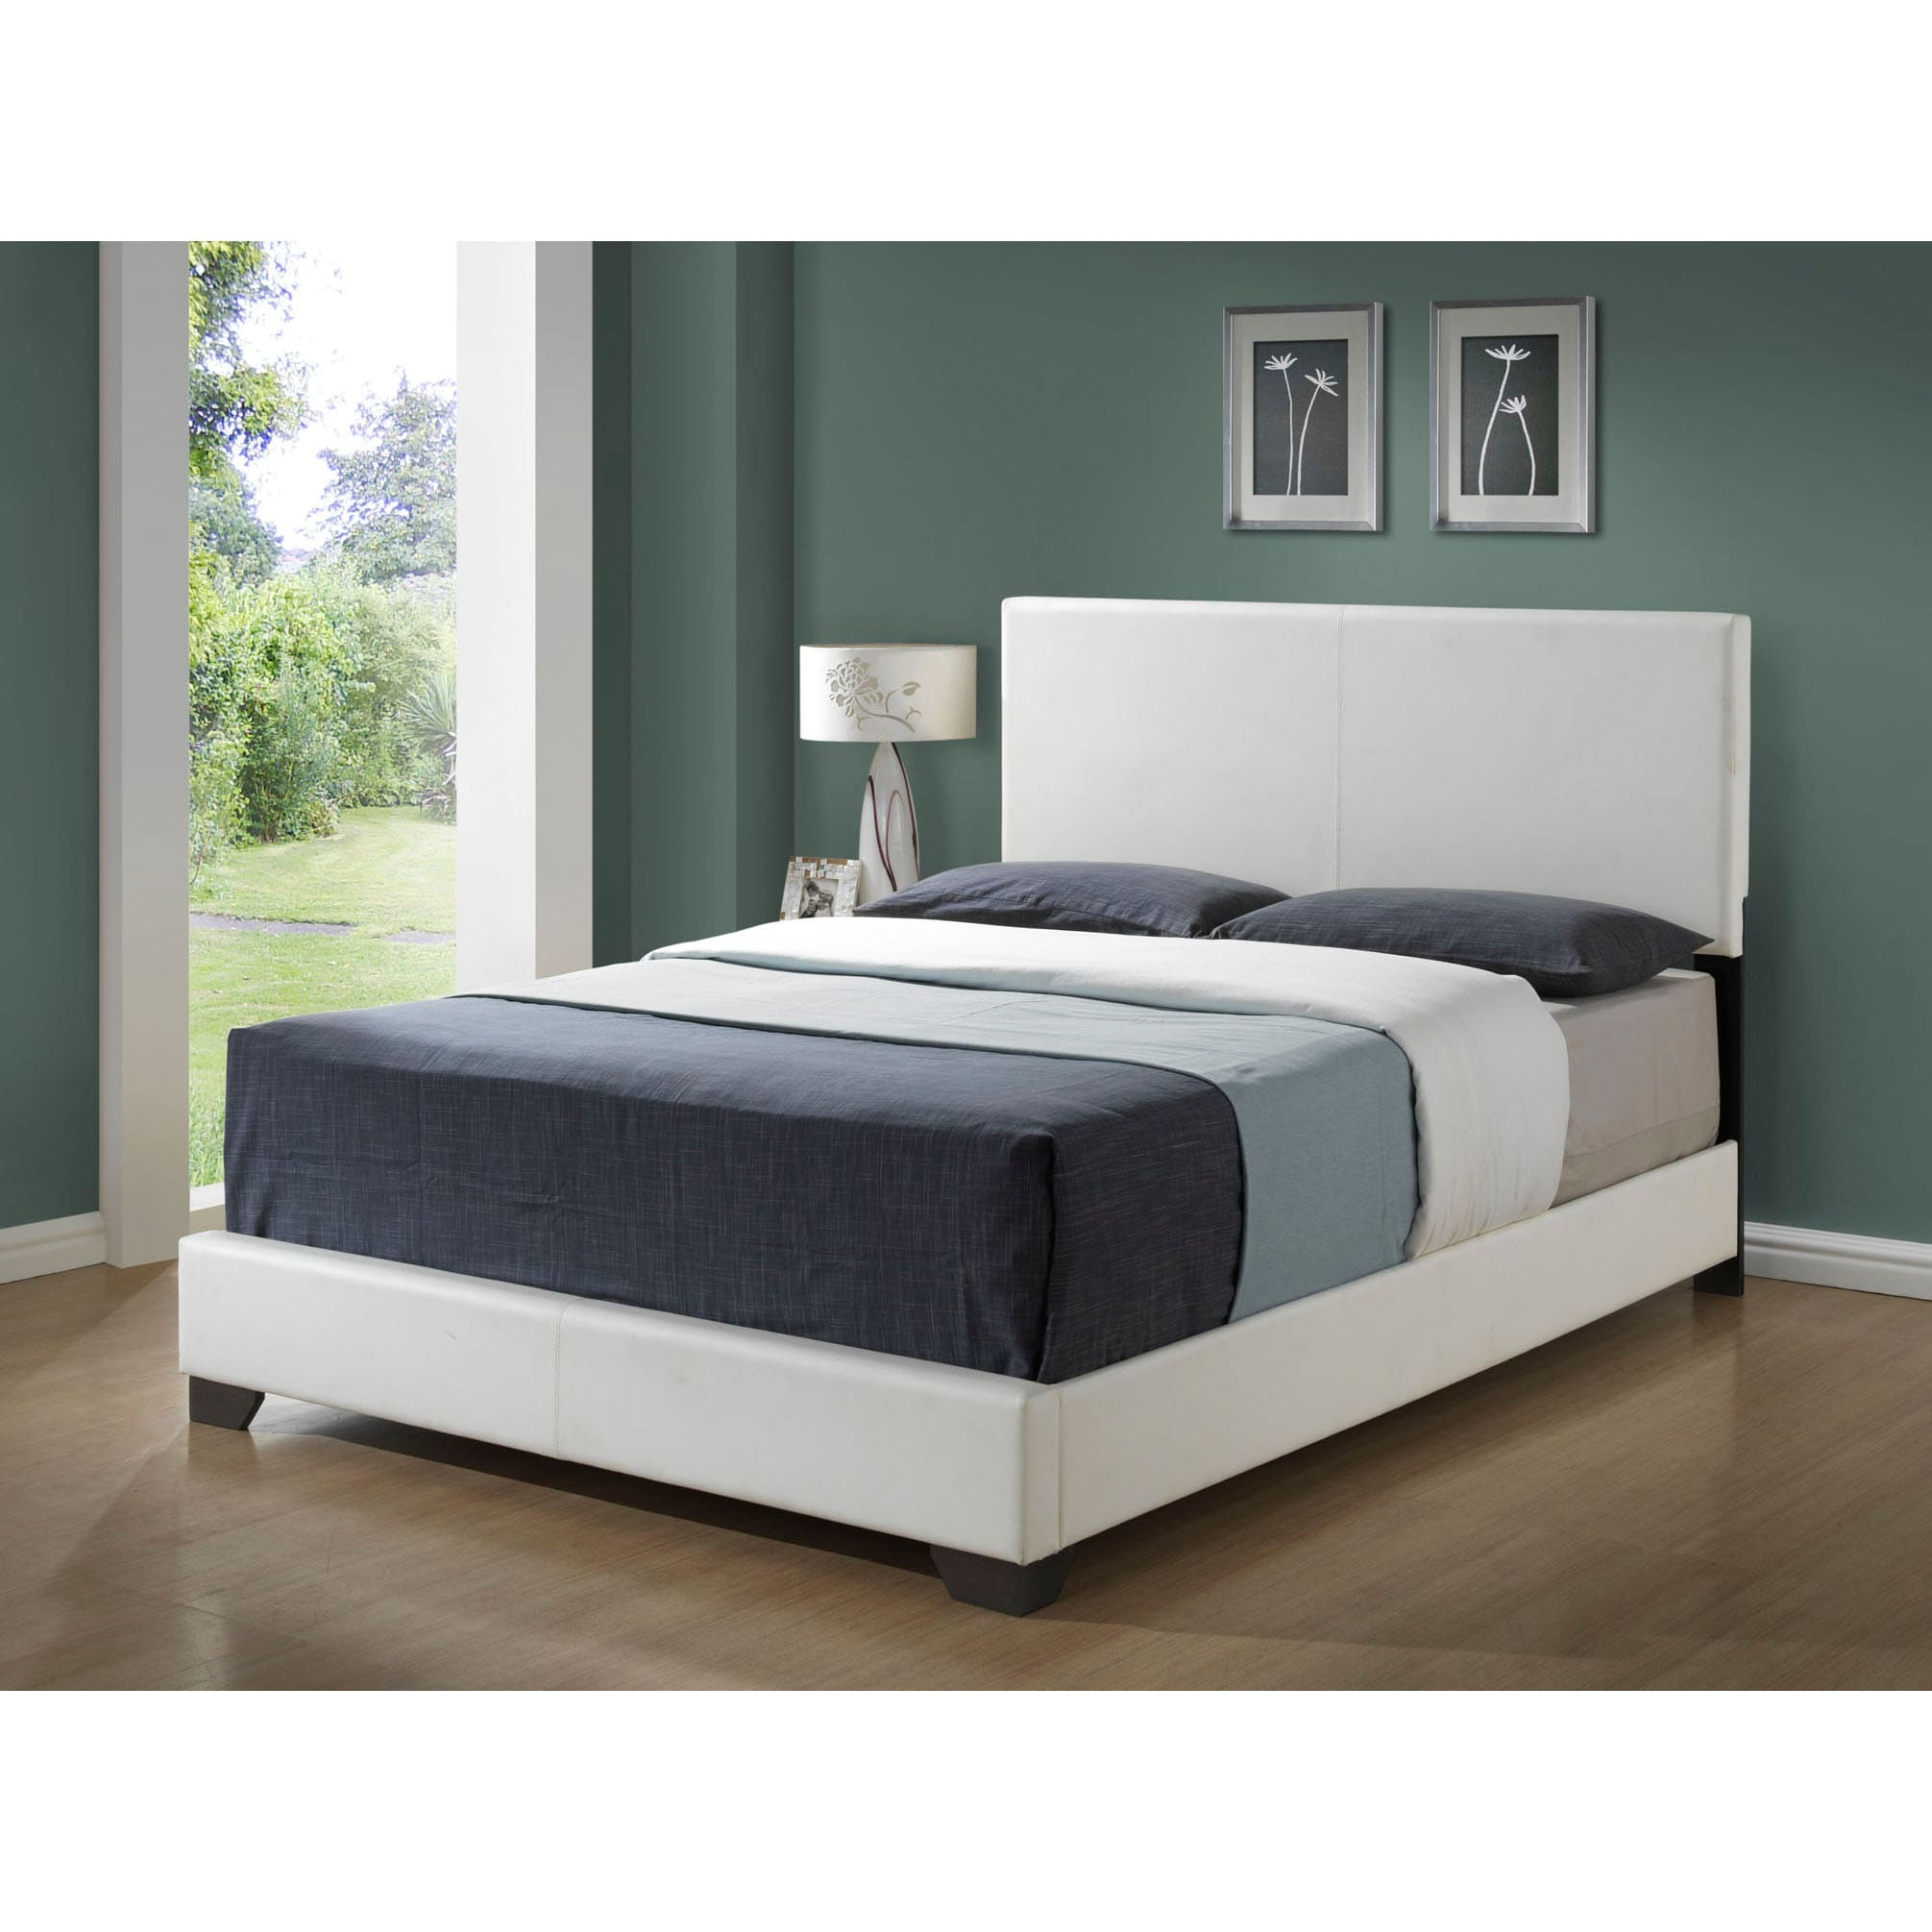 white leather look queen size bed 14352718 shopping great deals on monarch beds. Black Bedroom Furniture Sets. Home Design Ideas